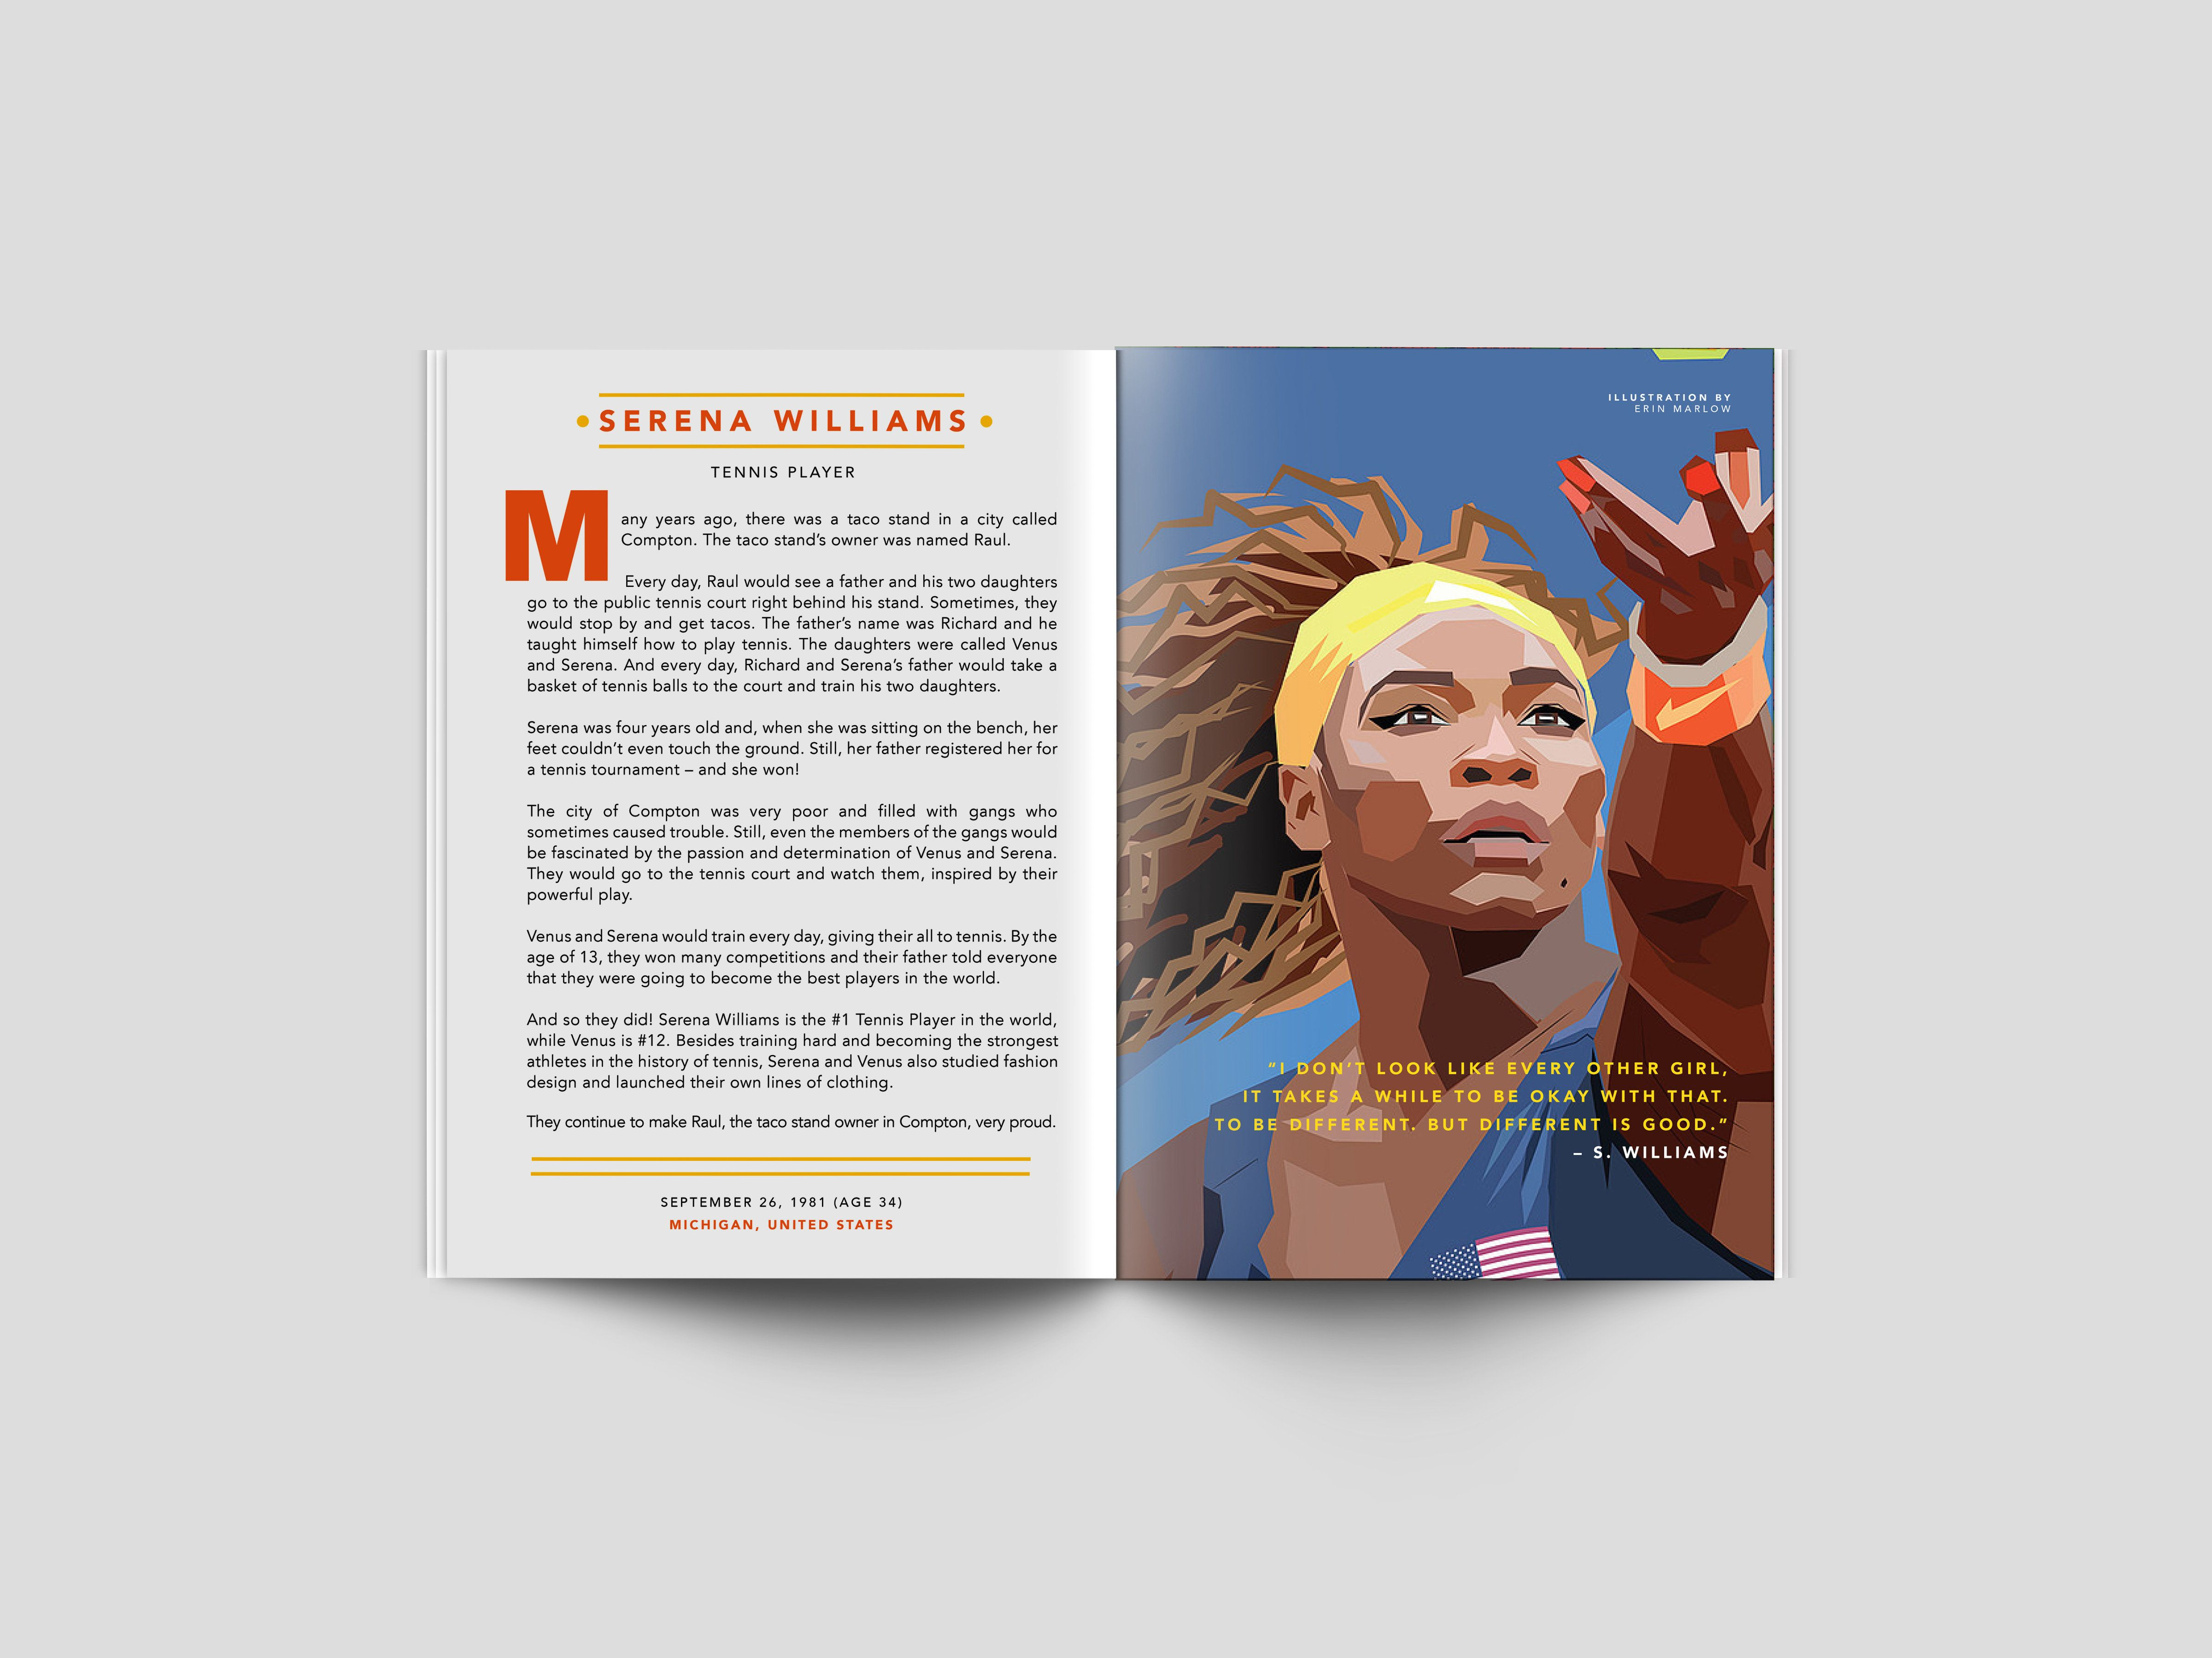 <i>Good Night Stories For Rebel Girls</i> features prominent women of the past and present like iconic tennis player Serena W